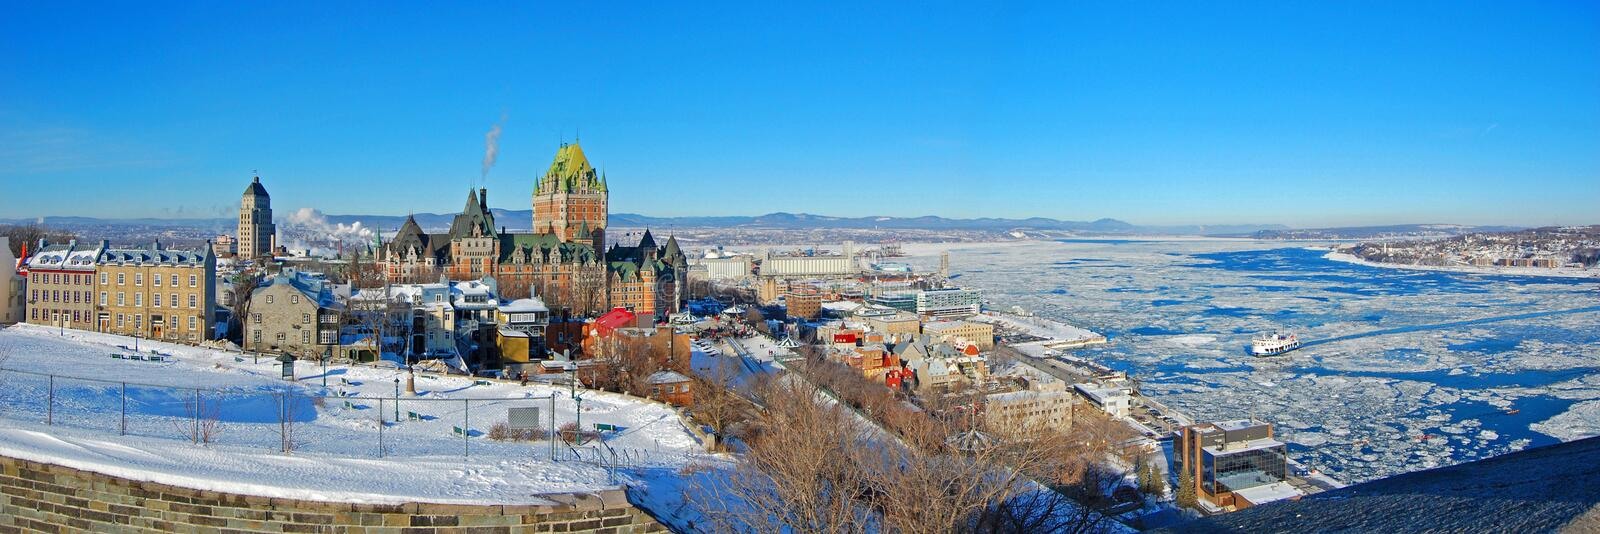 Historic Chateau Frontenac in Quebec City, QC, Canada stock image